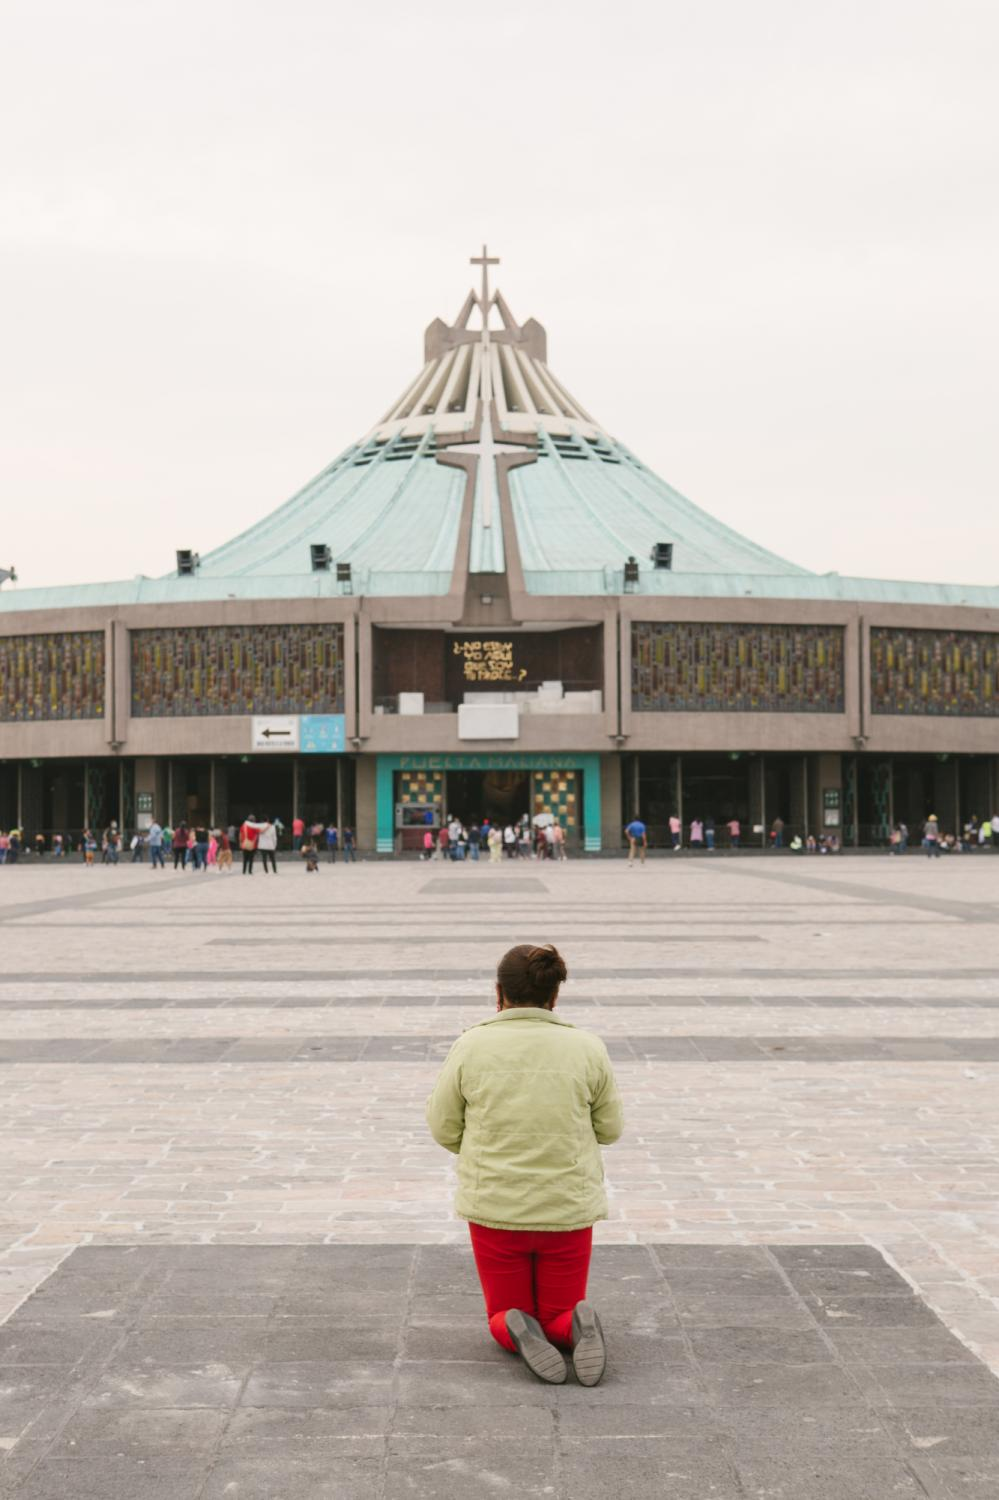 A woman crawls to the Basilica of Our Lady of Guadalupe in Mexico City, Mexico as a symbol of her devotion. Many visitors arrived prior to its closure due to the COVID-19 pandemic.